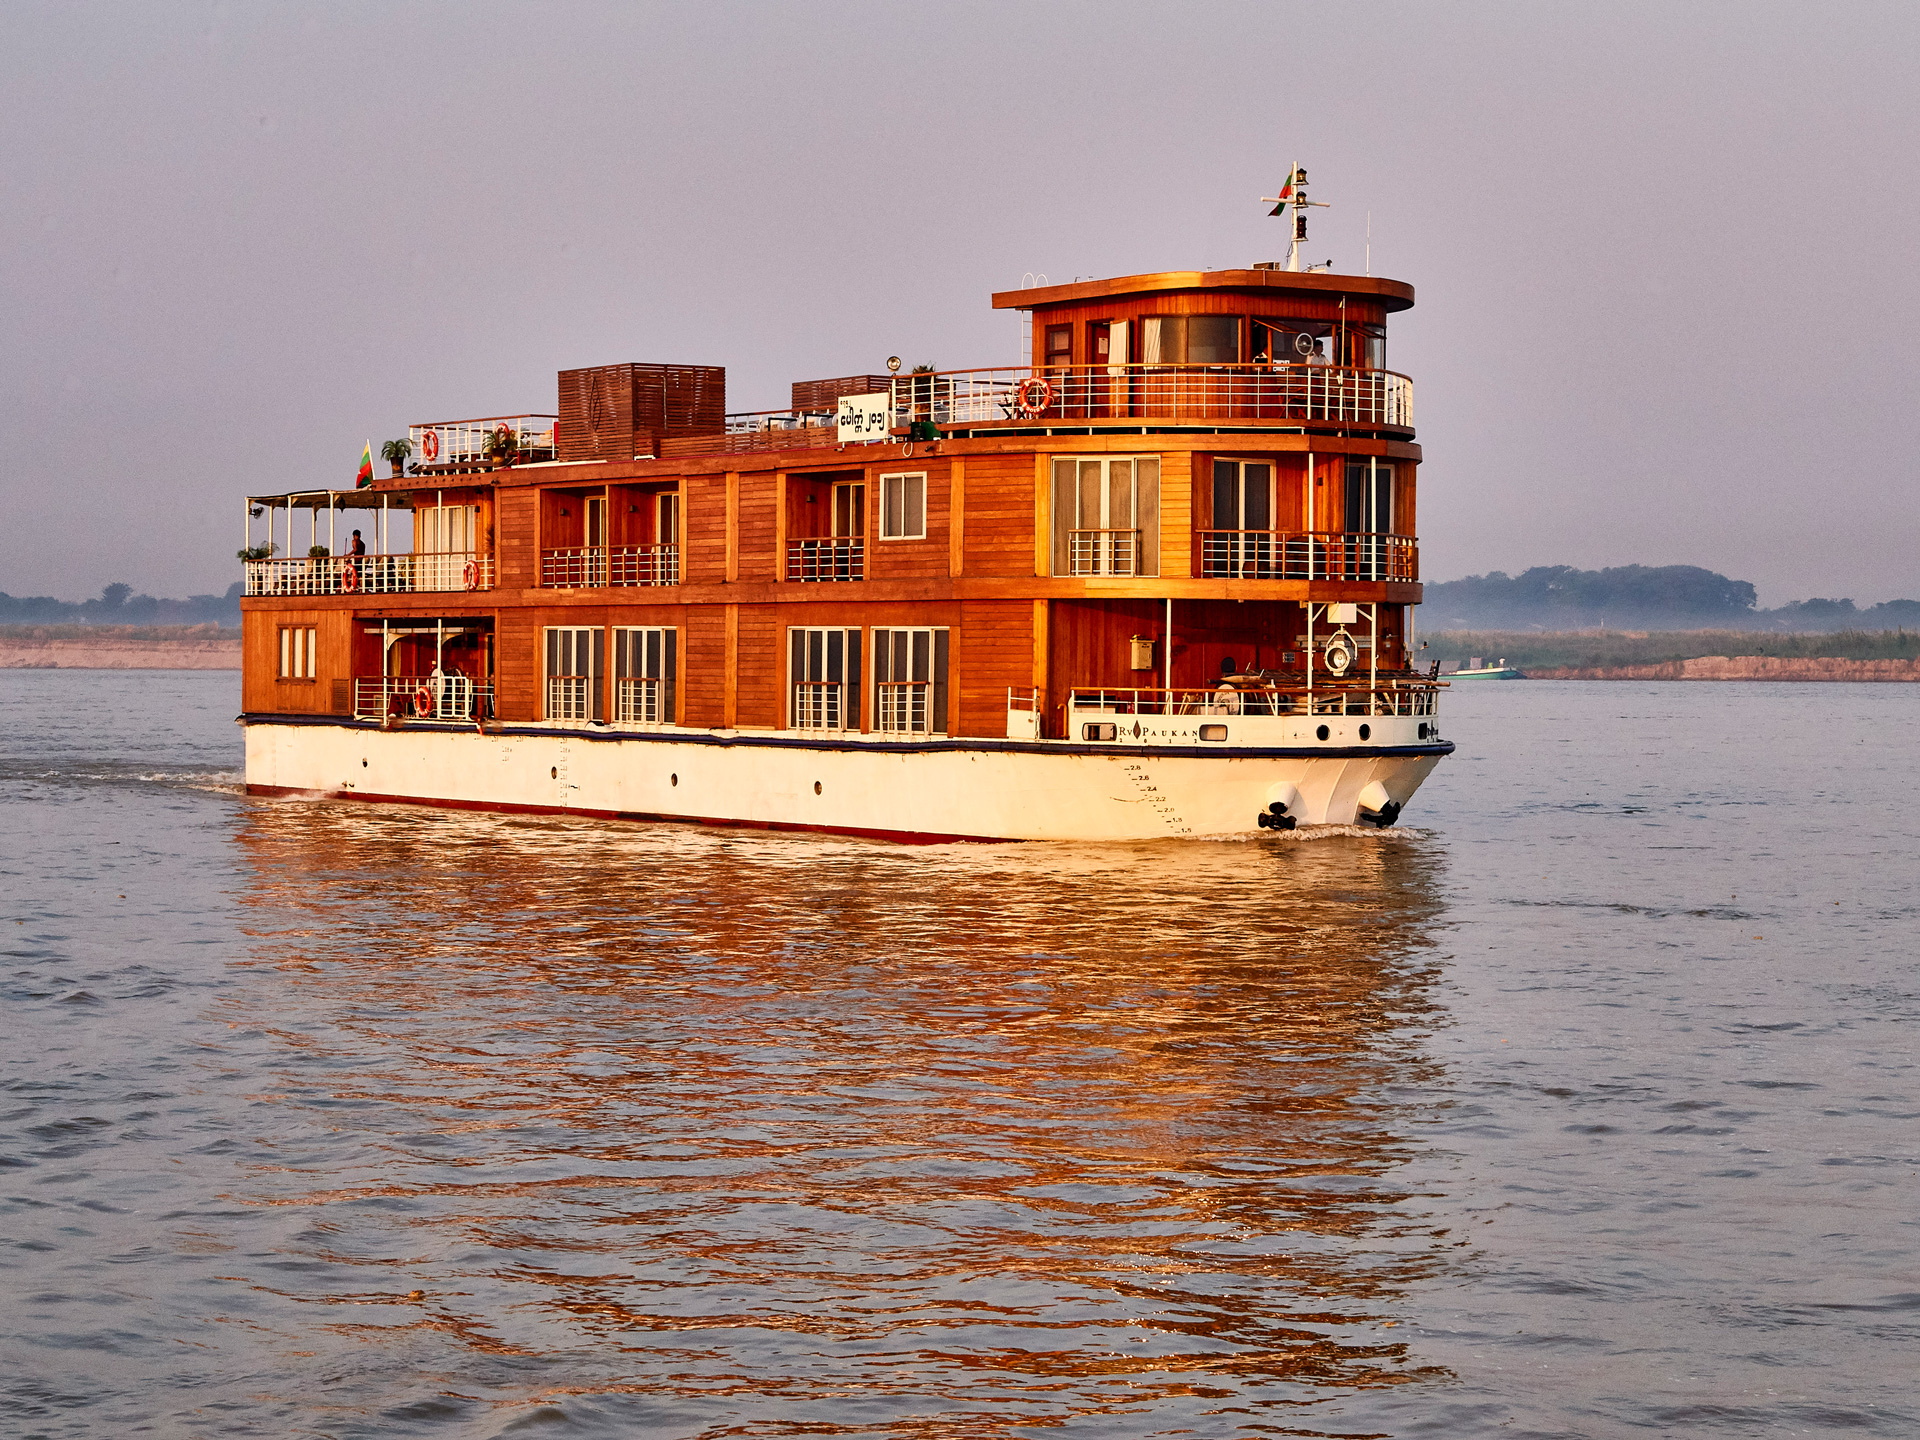 RV Paukan 2012 - This small cruising boutique hotel was built on the banks of the Yangon River, a place with a 200 years-old tradition of excellent craftsmanship. It is a gem of a vessel – a compact but elegant ship made of teak with a hull of marine steel. The walls and floors are of timber with each plank carefully chosen to display the beautiful grain. The décor is modern chic, with a few traditional motifs, wooden figures, fabrics and paintings to give a touch of Myanmar culture. The ship takes 34 passengers in its 18 staterooms, twin and double. All the staterooms are tastefully decorated and comfortable with a private bathroom.